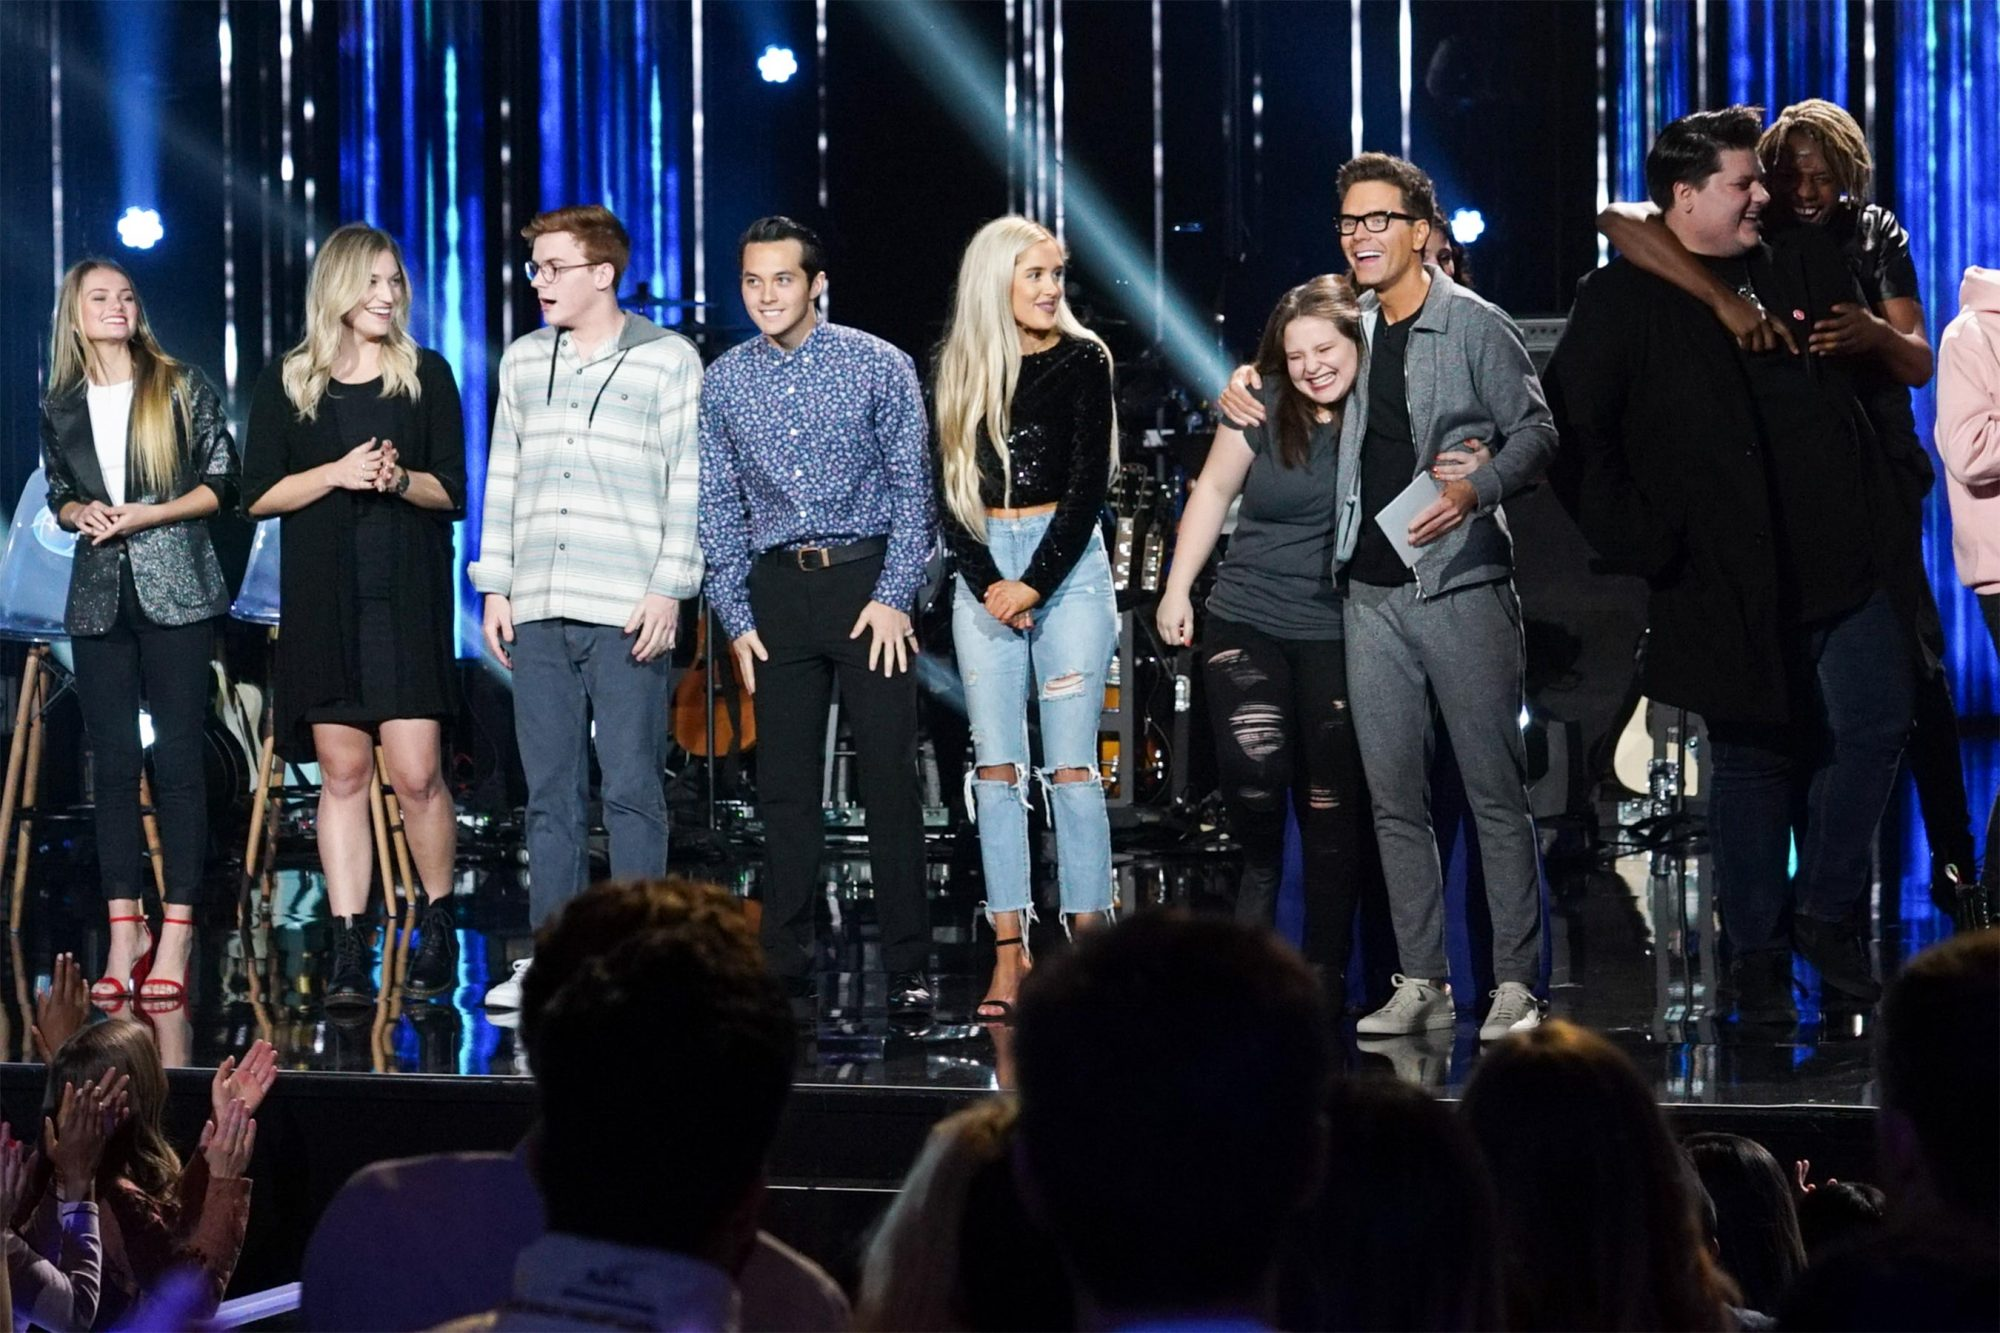 RILEY THOMPSON, ASHLEY HESS, WALKER BURROUGHS, LAINE HARDY, LACI KAYE BOOTH, MADISON VANDENBURG, BOBBY BONES, WADE COTABRUCE, UCHE, DIMITRIUS GRAHAM, JEREMIAH LLOYD HARMON